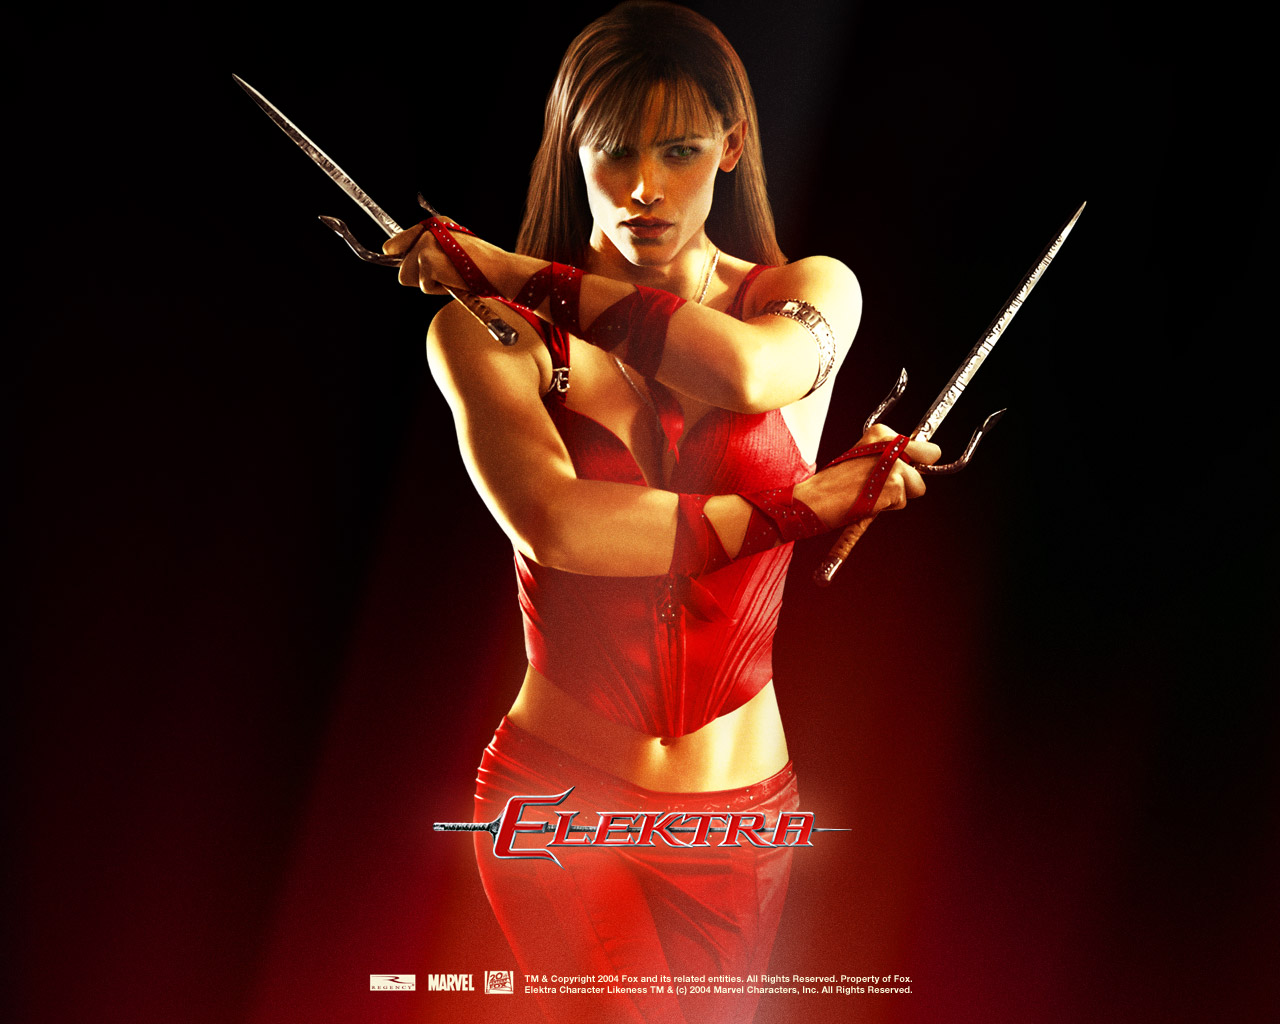 Just Walls: Elektra Movie Character Wallpaper